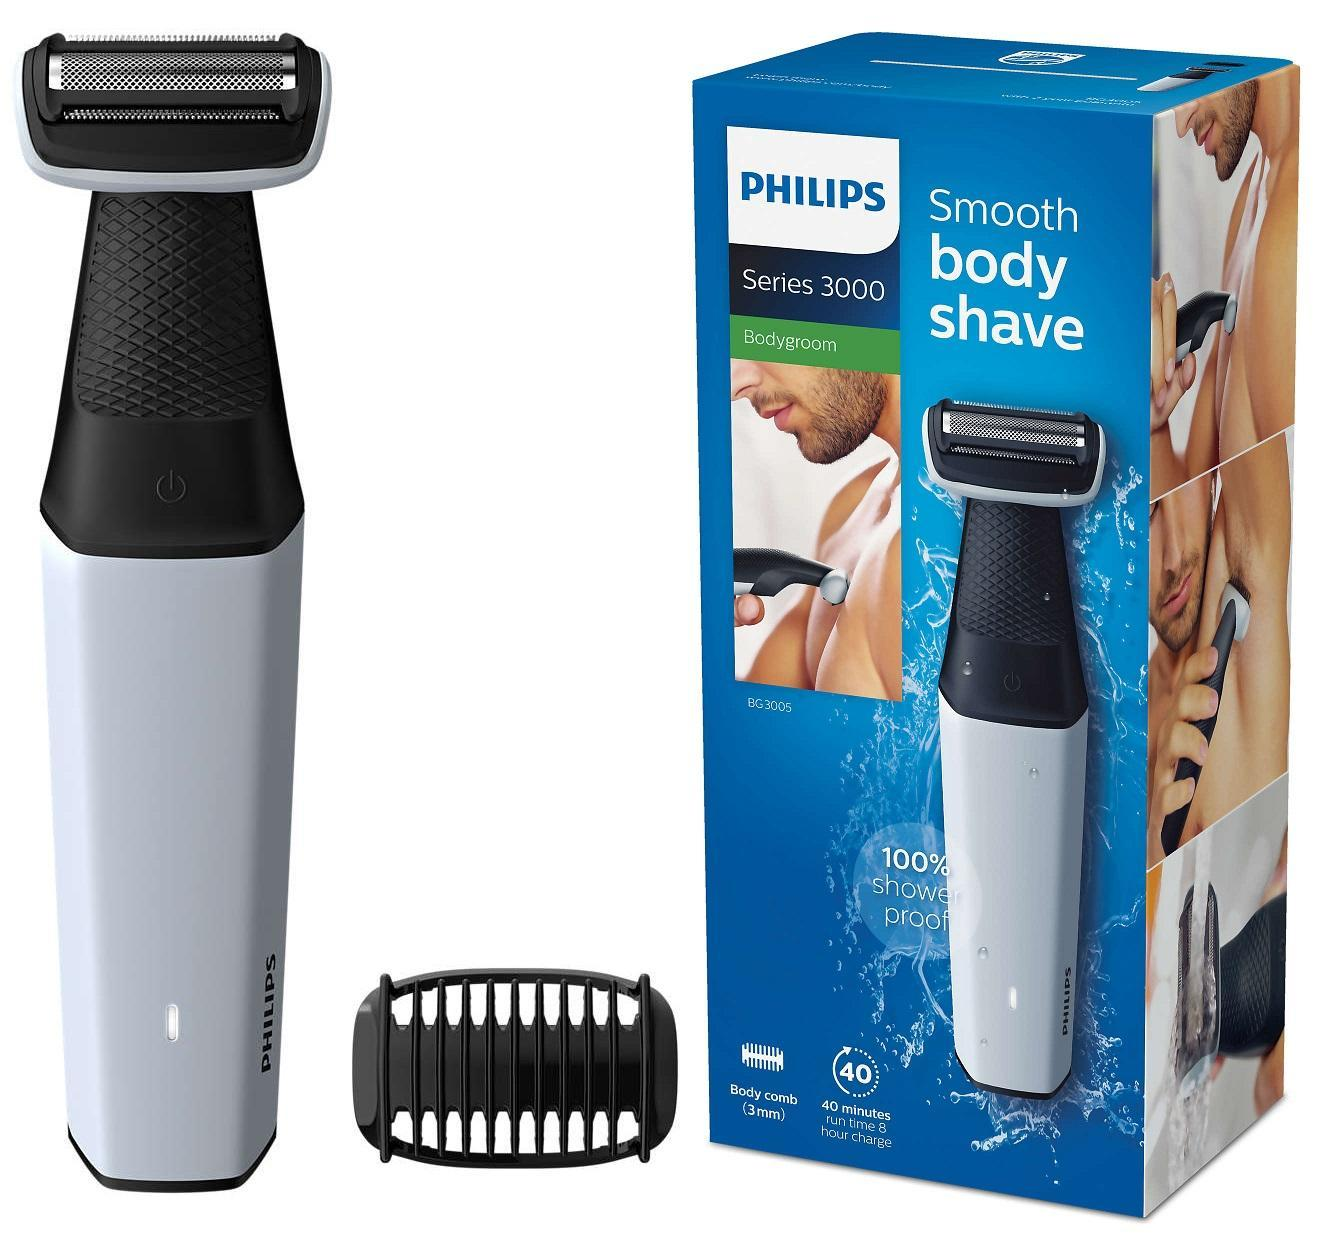 Latest Philips Shavers Products Enjoy Huge Discounts Lazada Sg Electric Shaver Pq206 Bg3005 Bodygroom Series 3000 Smooth Body